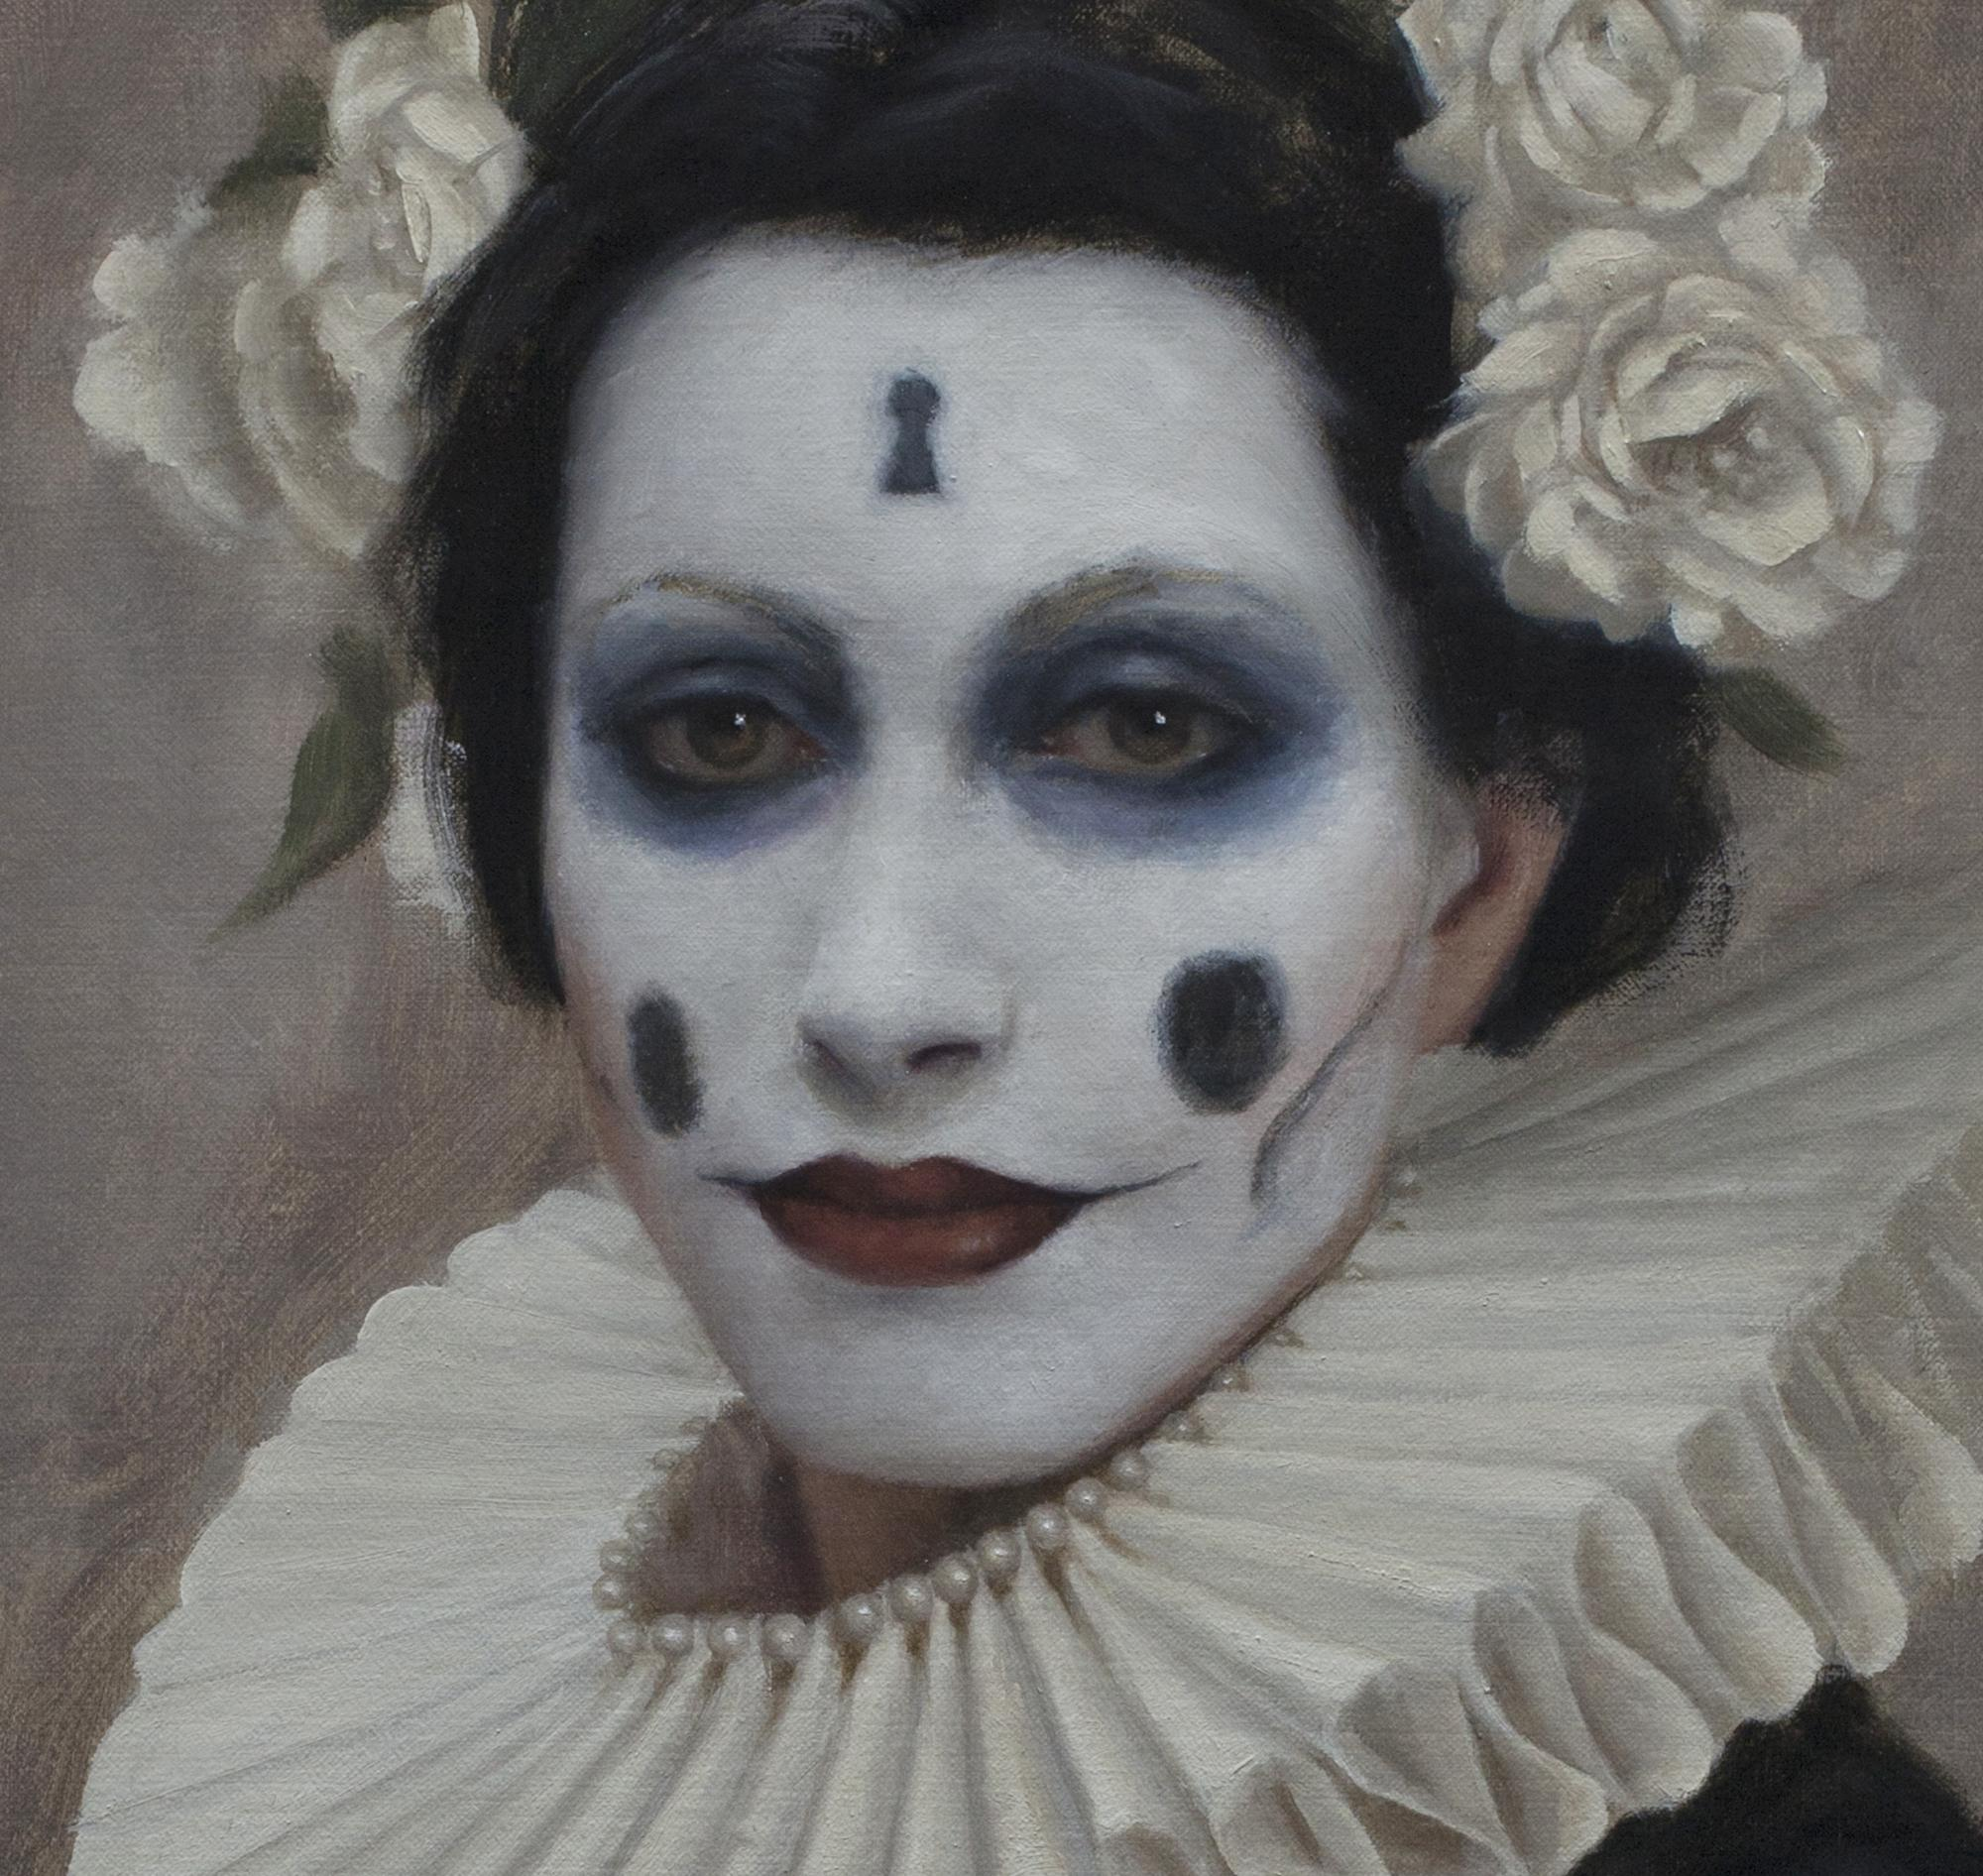 Skeleton Key, oil painting by david gluck, portrait